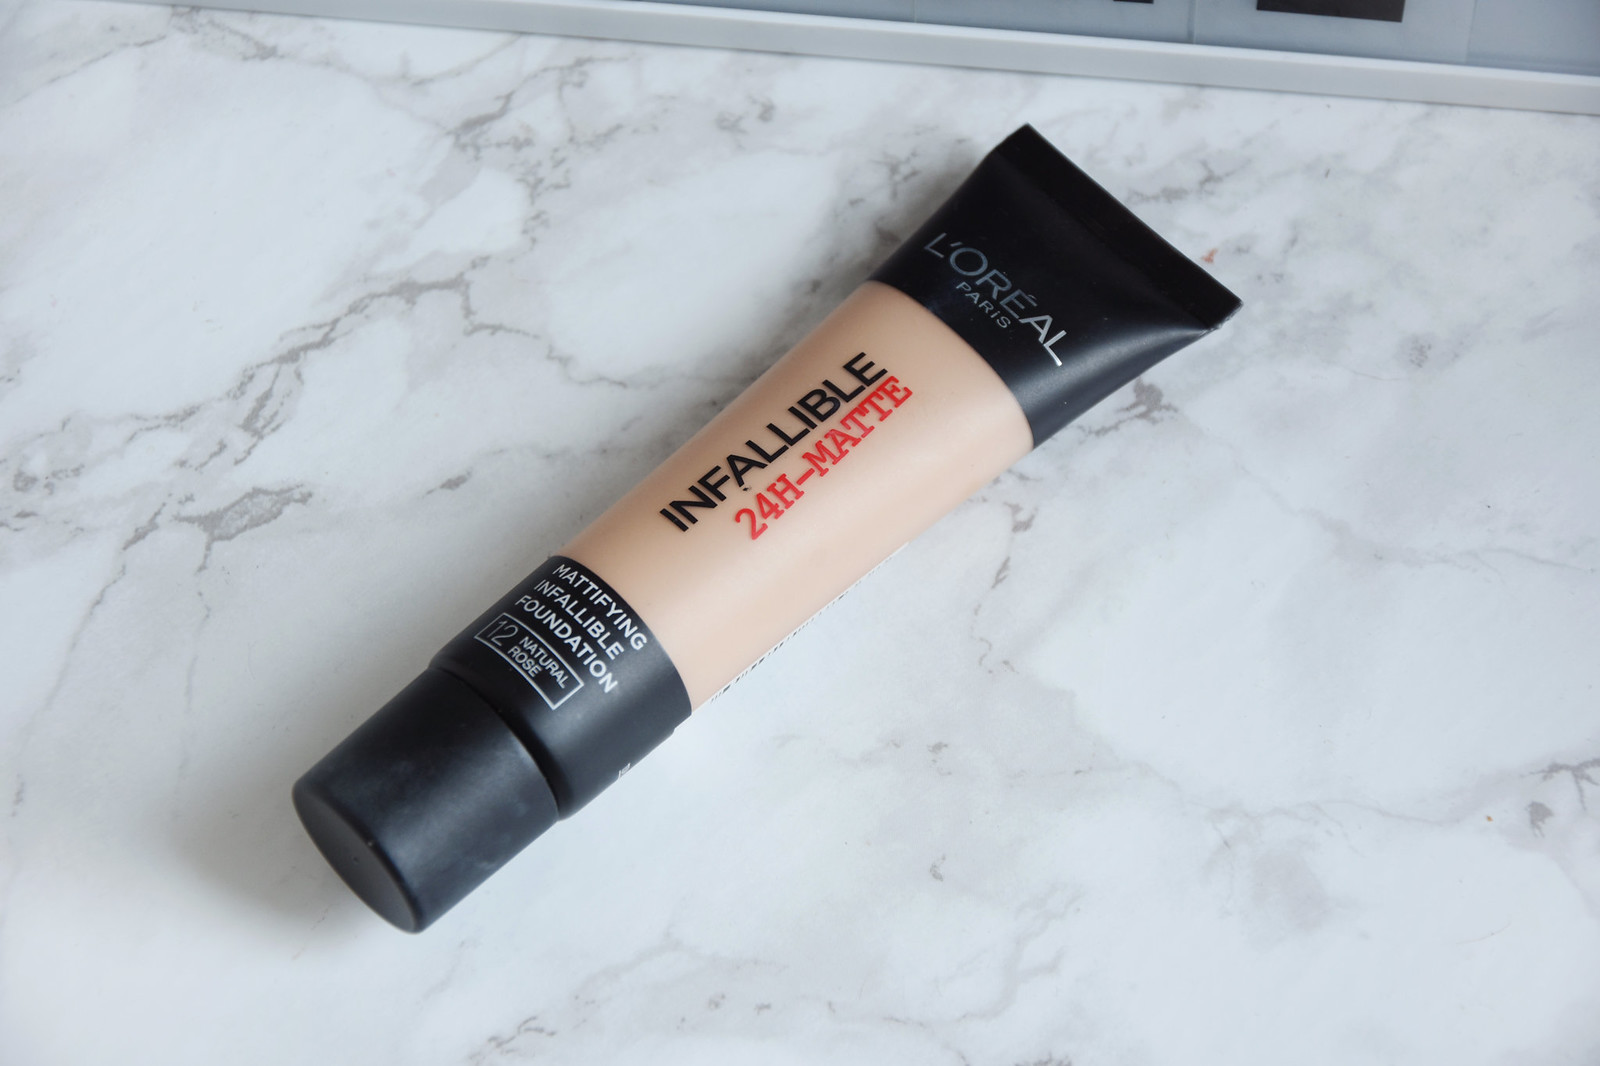 L'Oreal Infallible mattifying foundation review